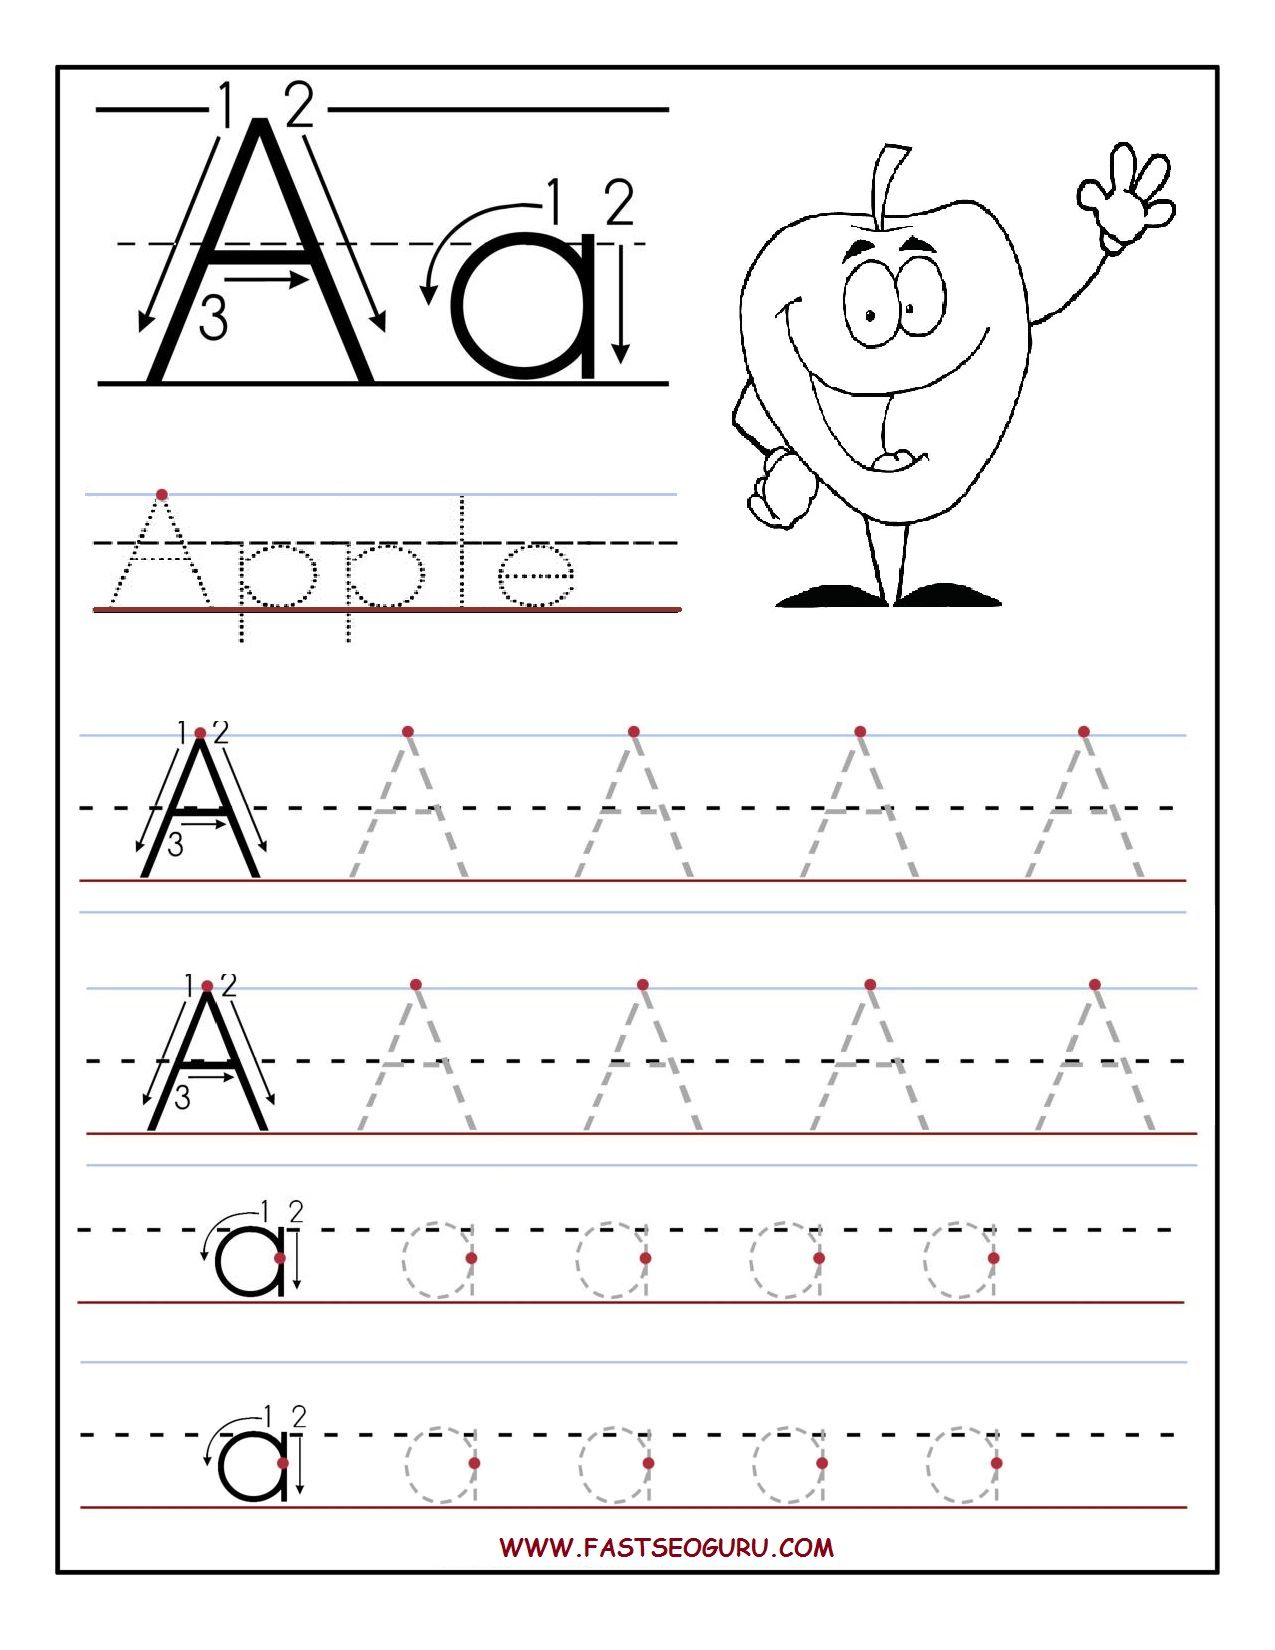 bFreeb bPrintableb letter A tracing bworksheetsb – Free Alphabet Tracing Worksheets